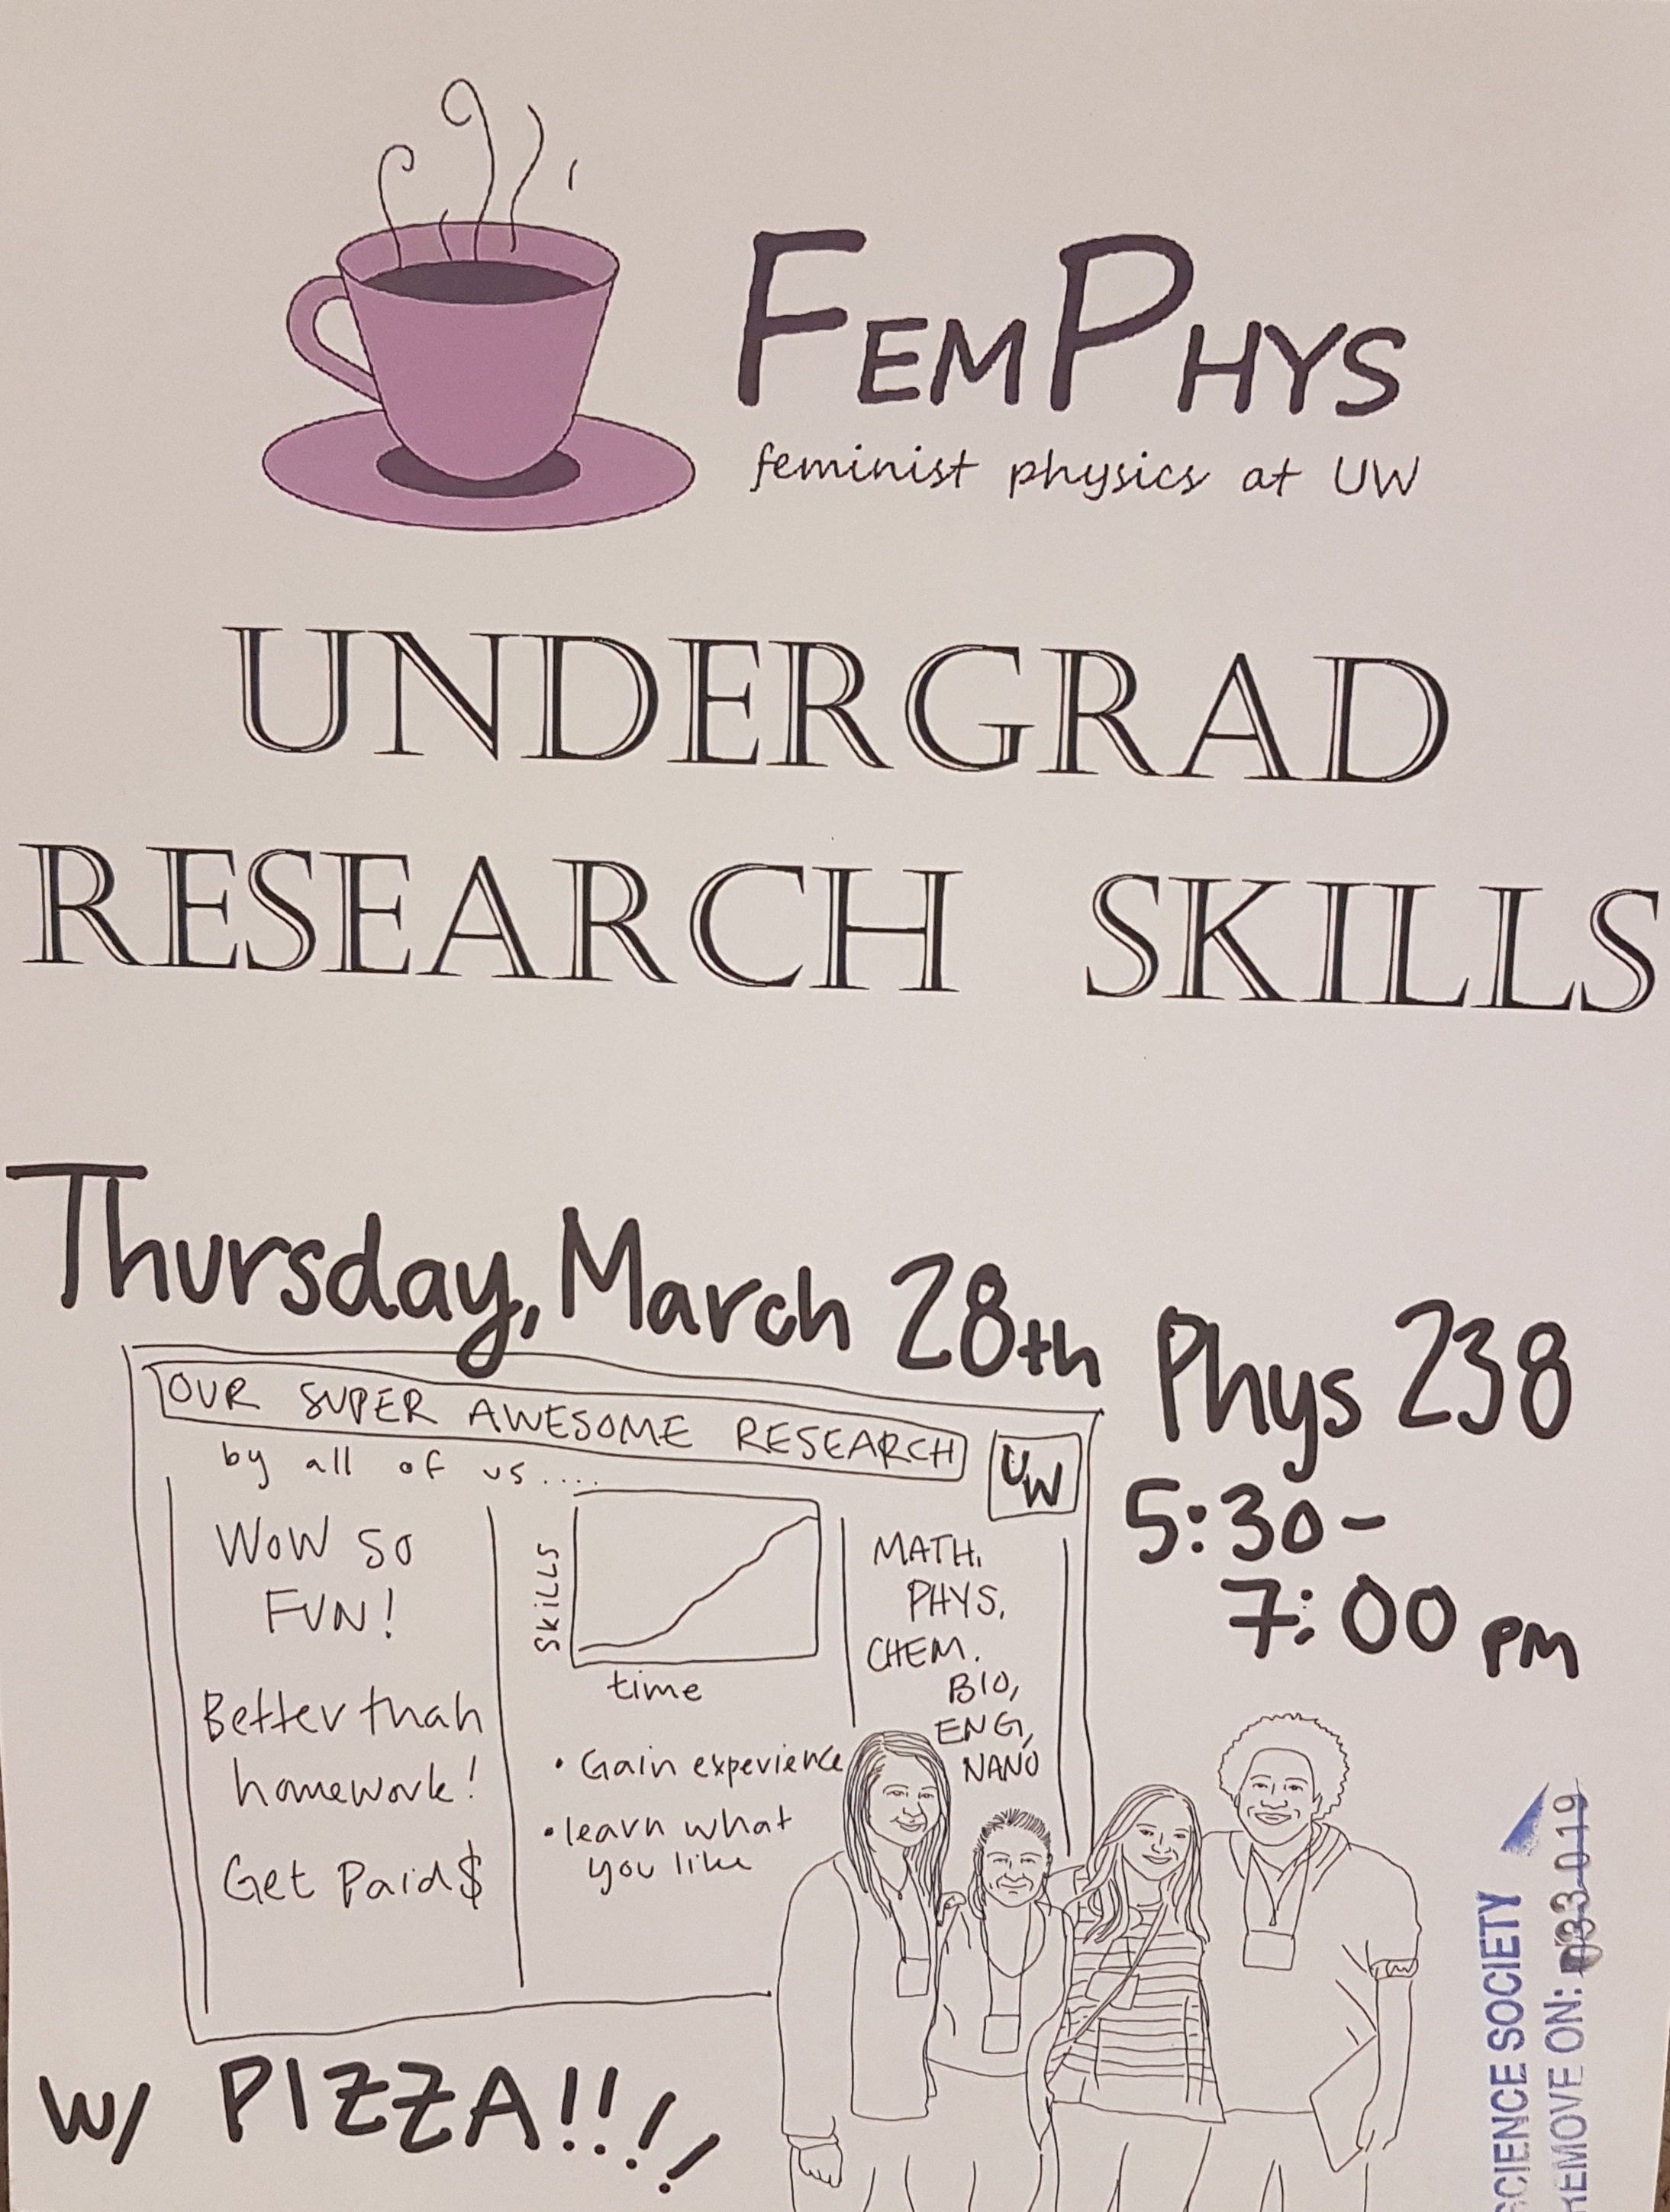 FemPhys Undergrad Research Skills March 28 5:30-7:00 pm PHYS 238